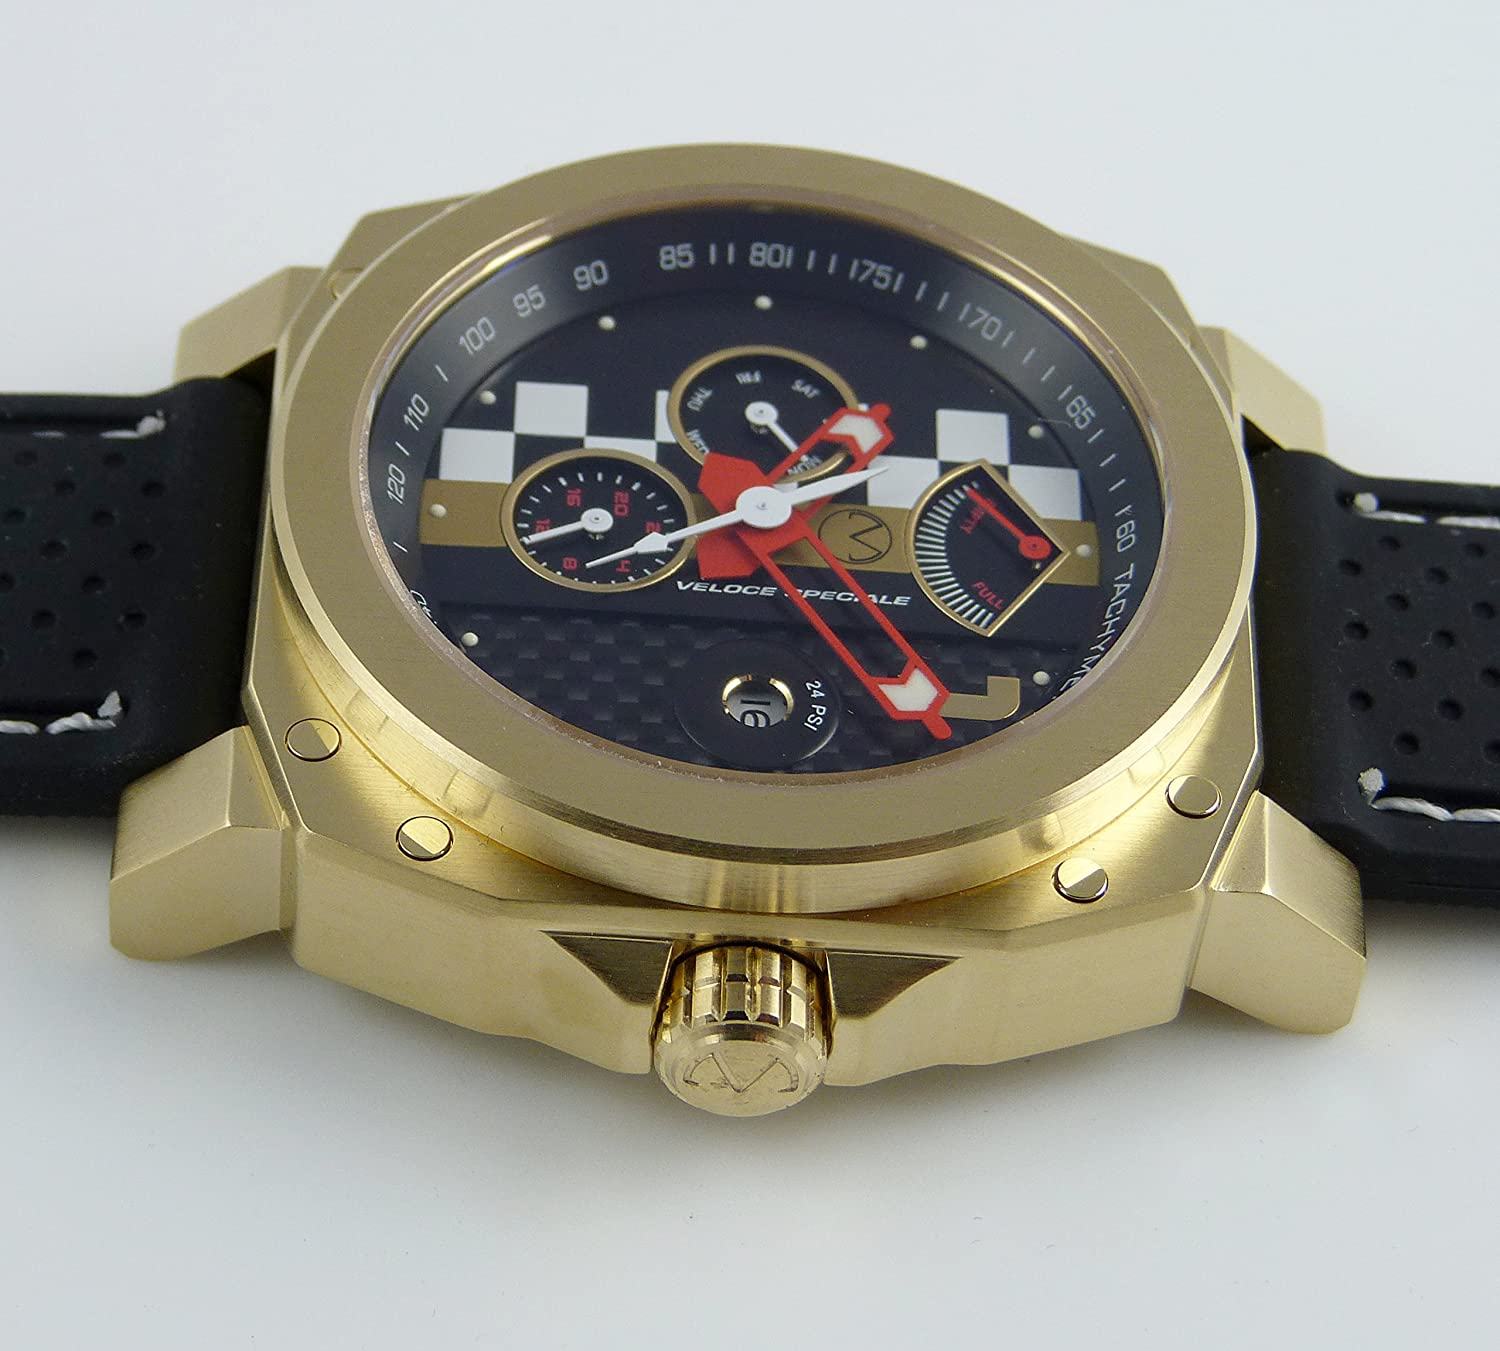 Veloce Speciale Racing Armbanduhr